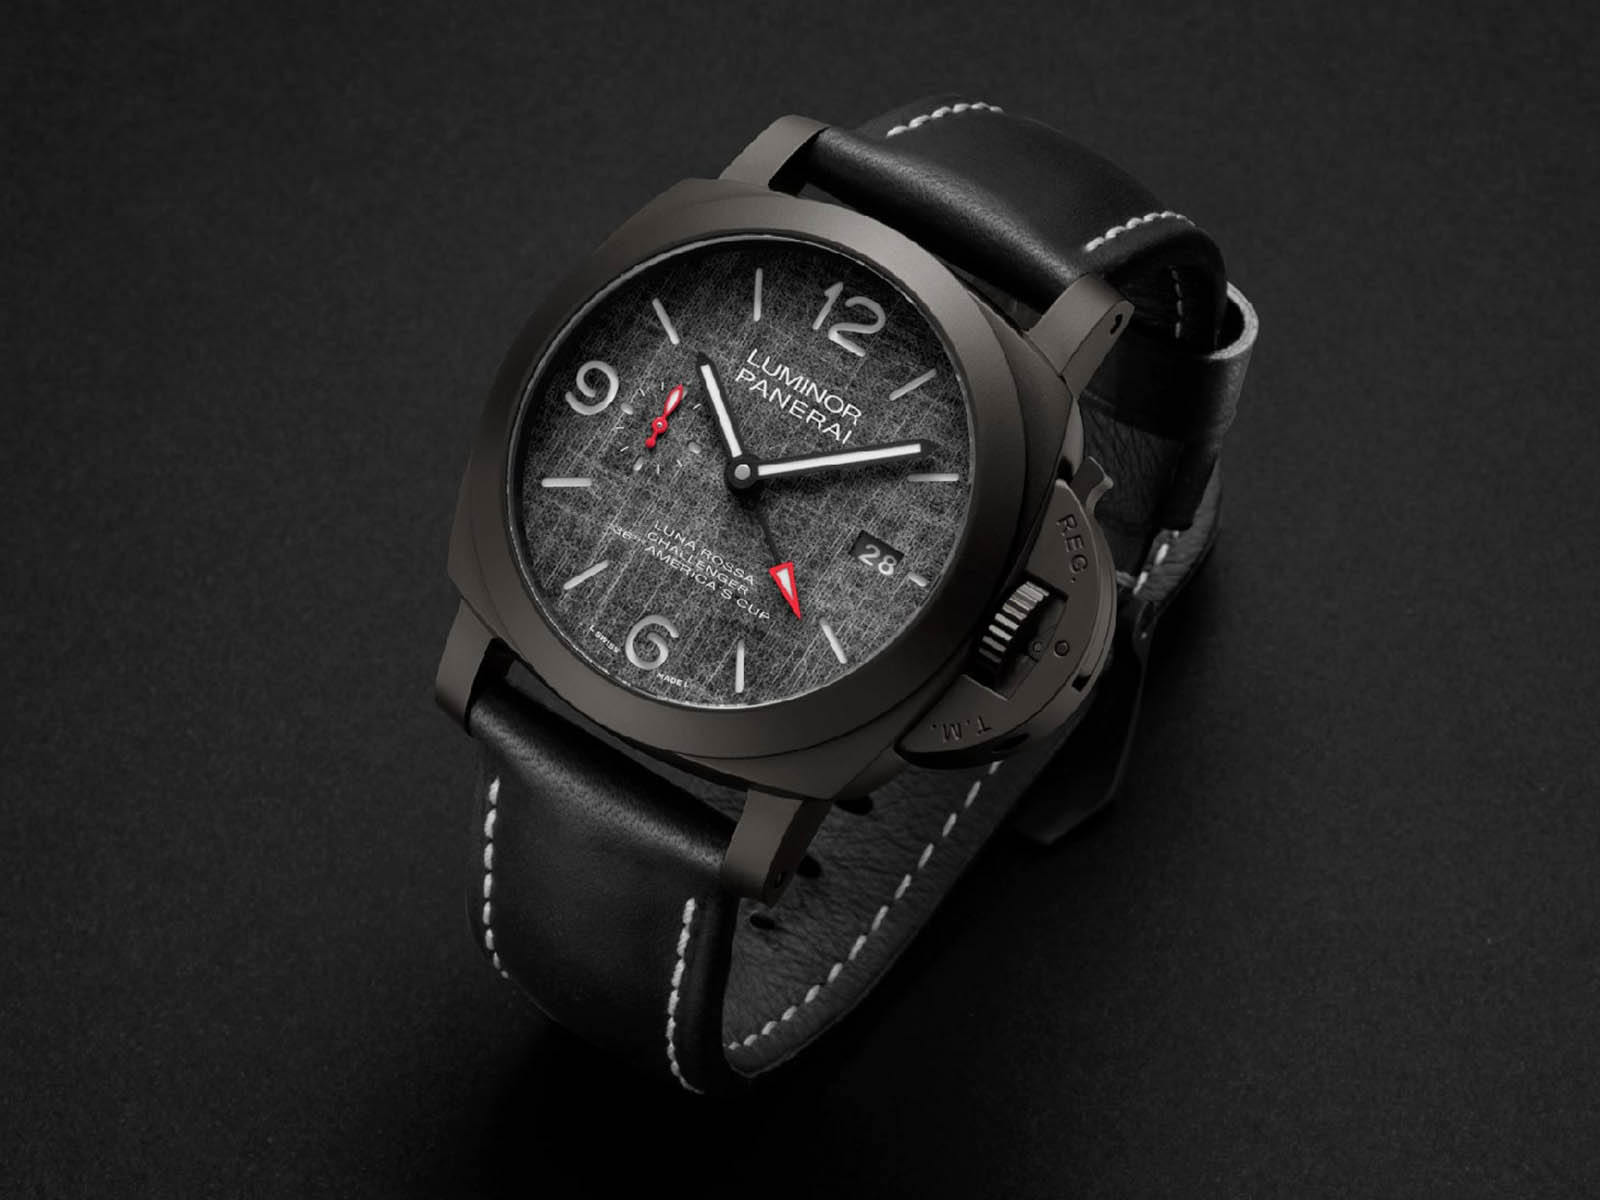 panerai-luminor-luna-rossa-5.jpg